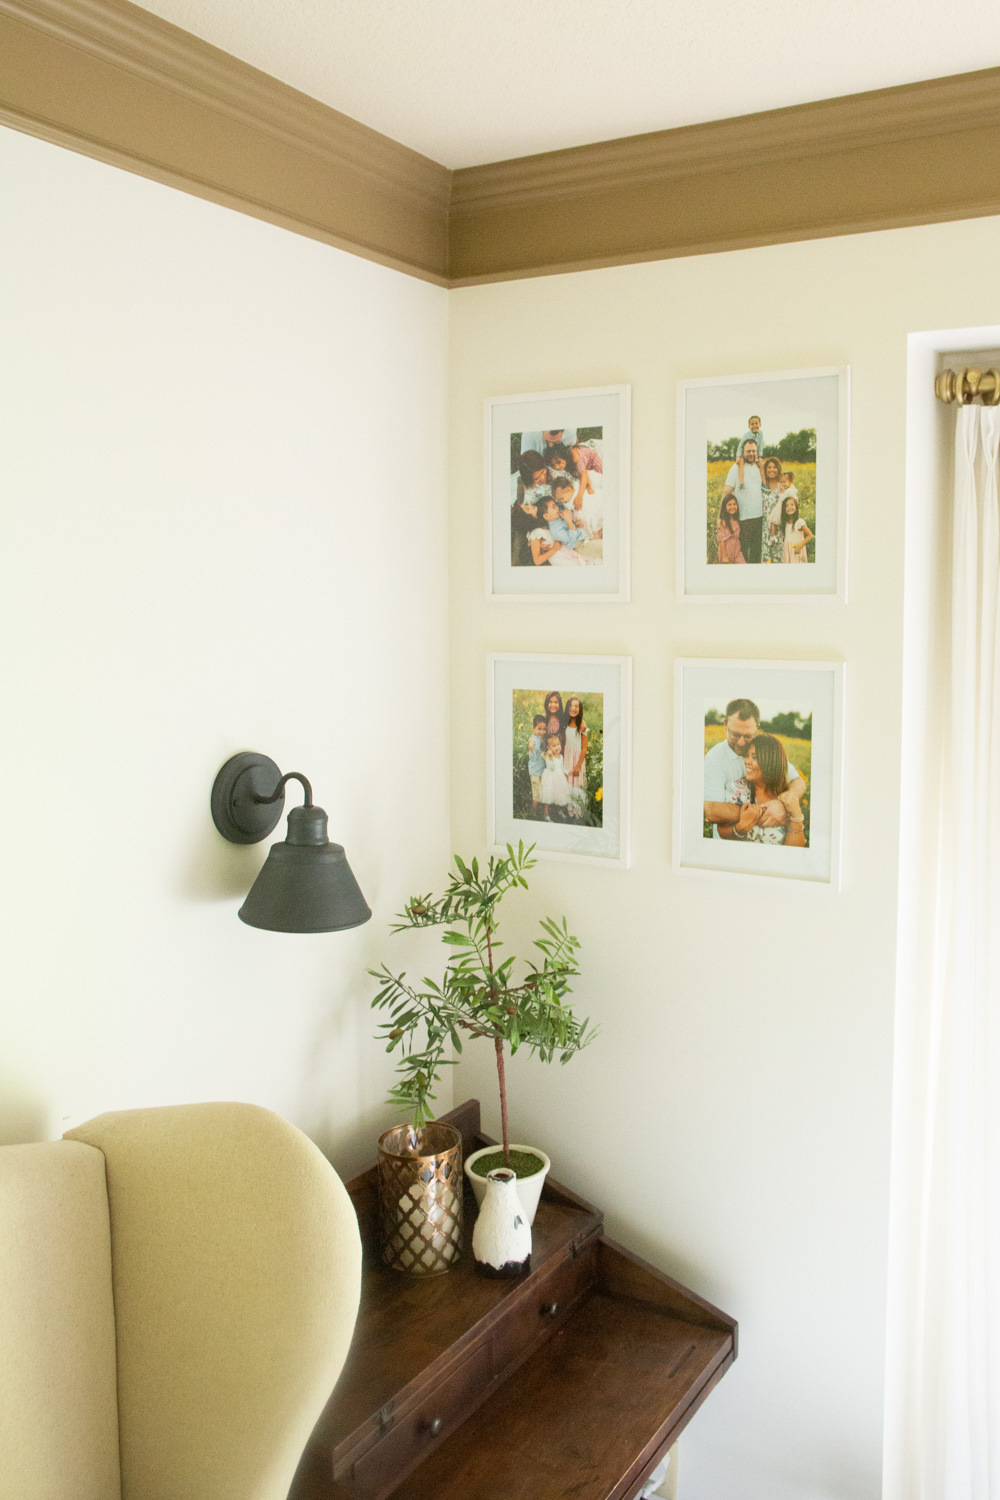 DIY Wall Sconce Lighting without Electricity or Power ... on Sconces No Electric Power id=21271